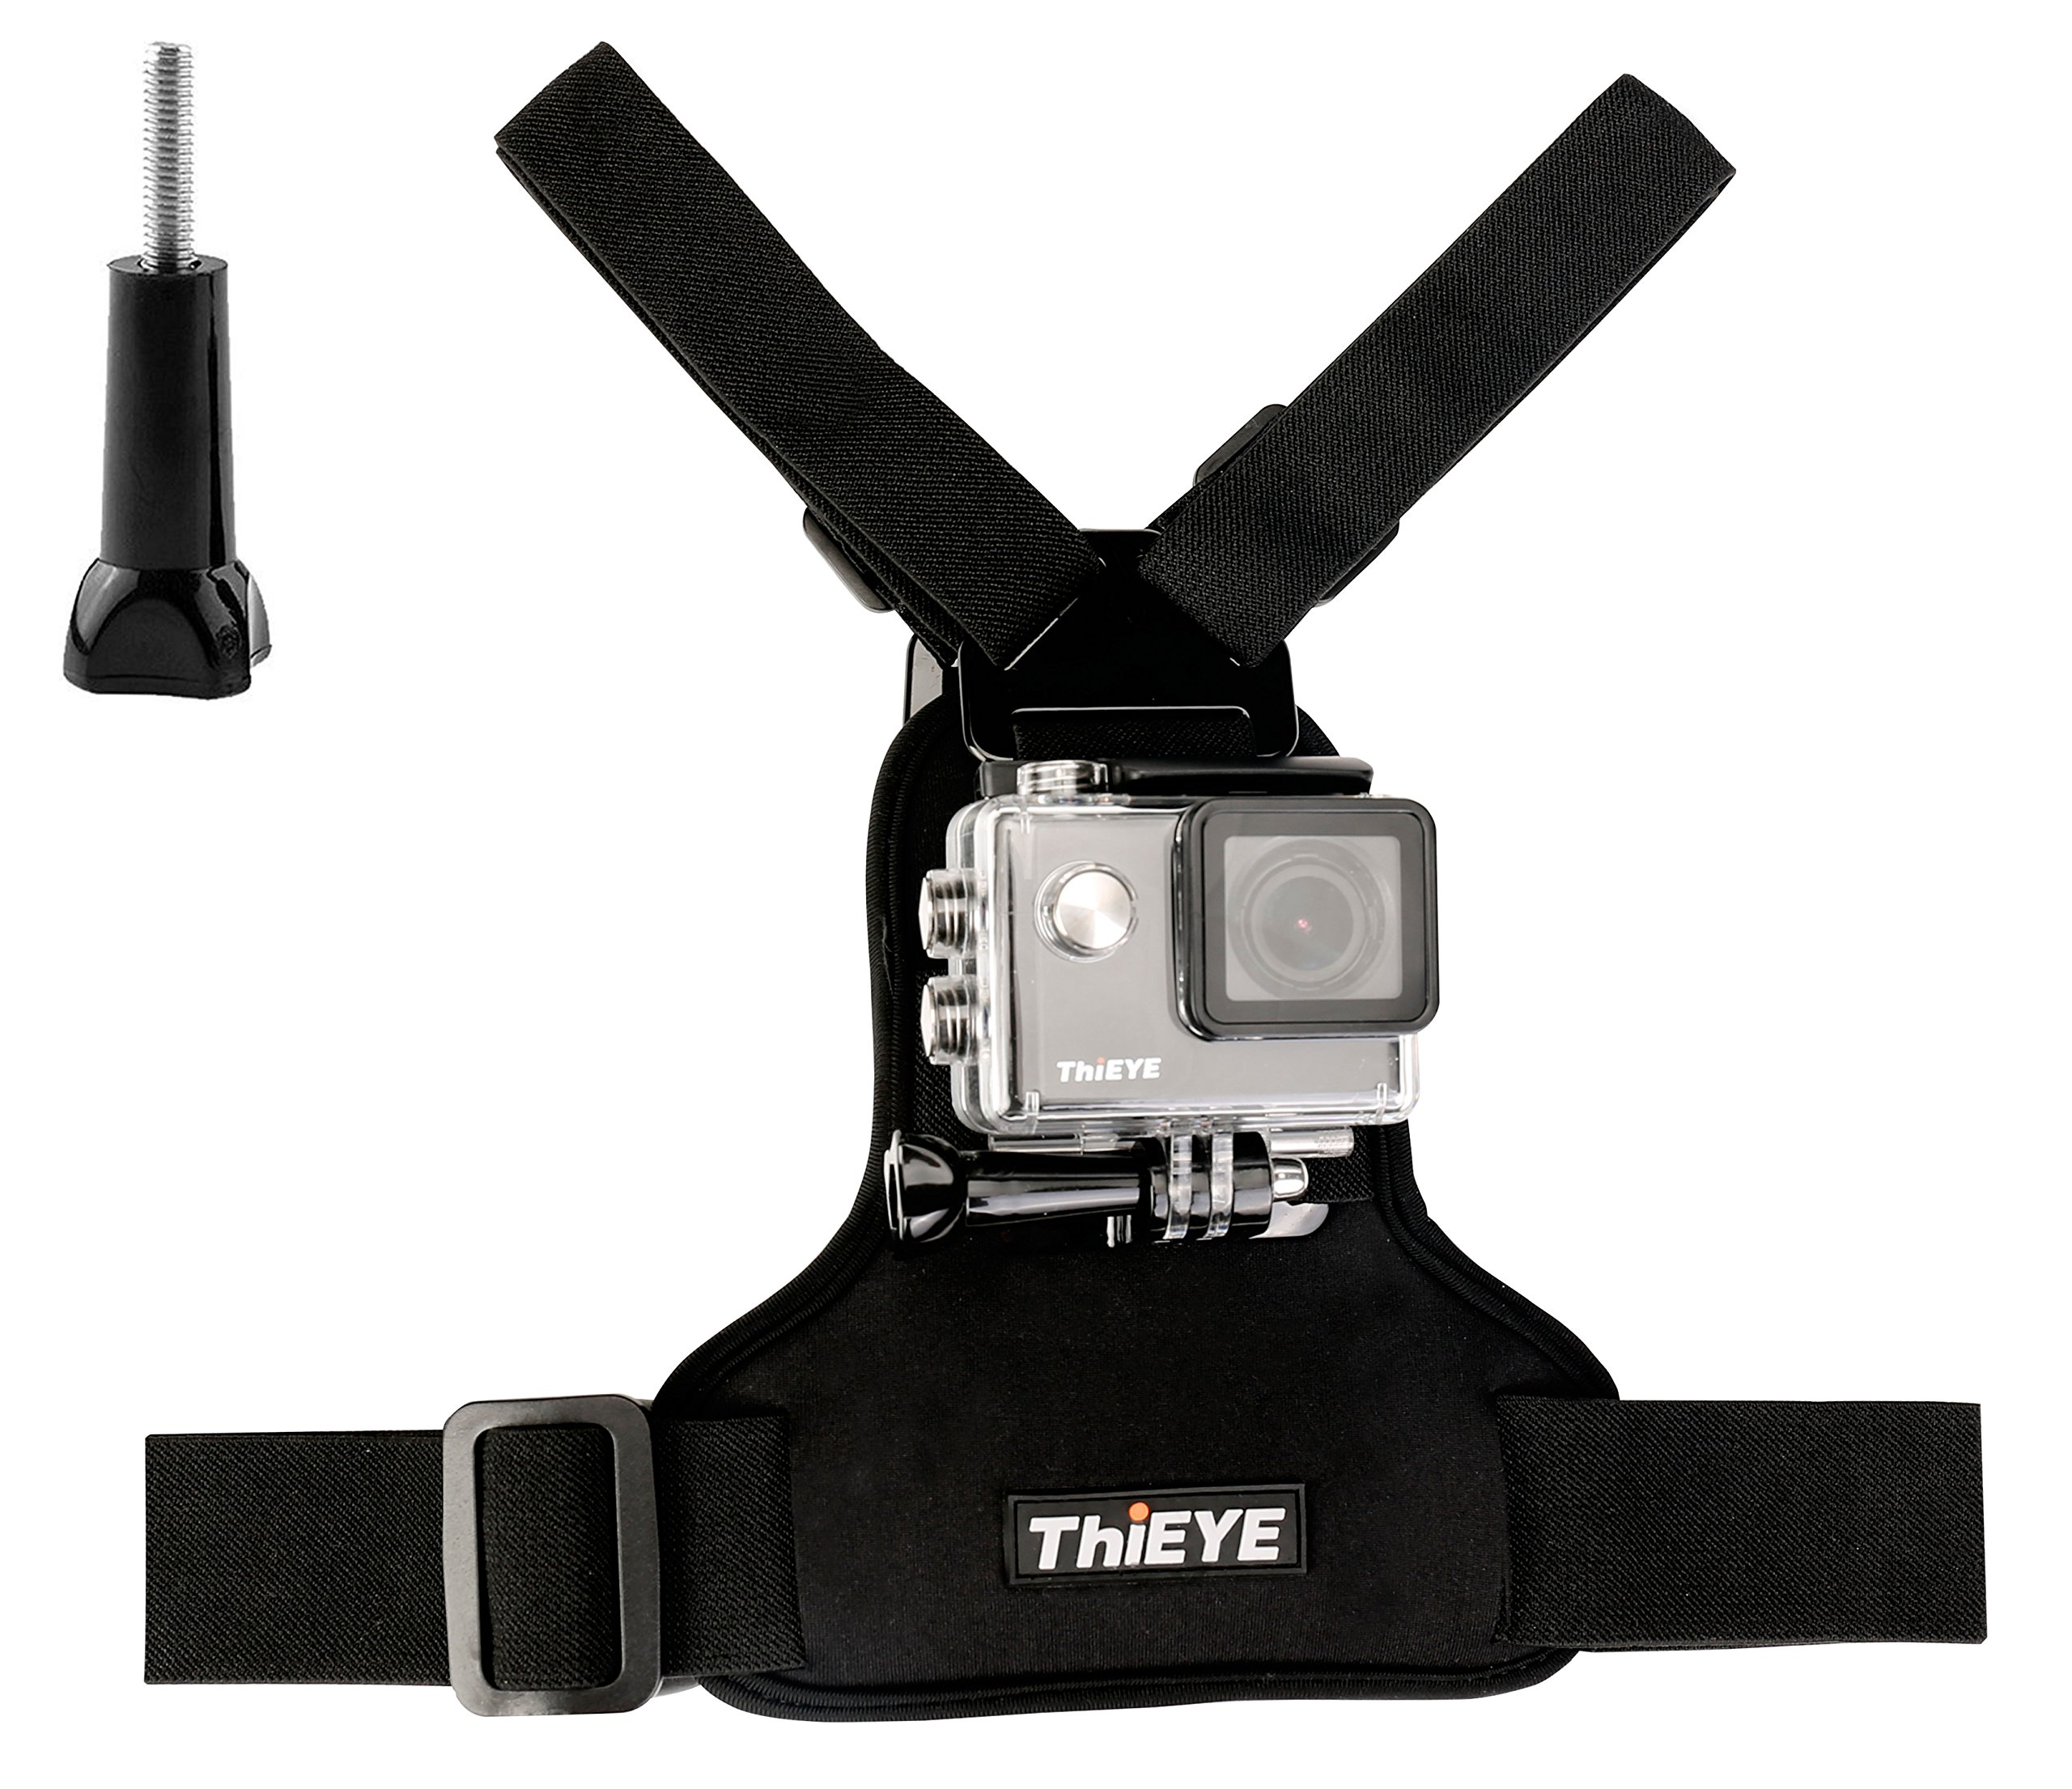 ThiEYE Universal Adjustable Chest Mount Harness With Thumb Screw for Spors Action Cameras